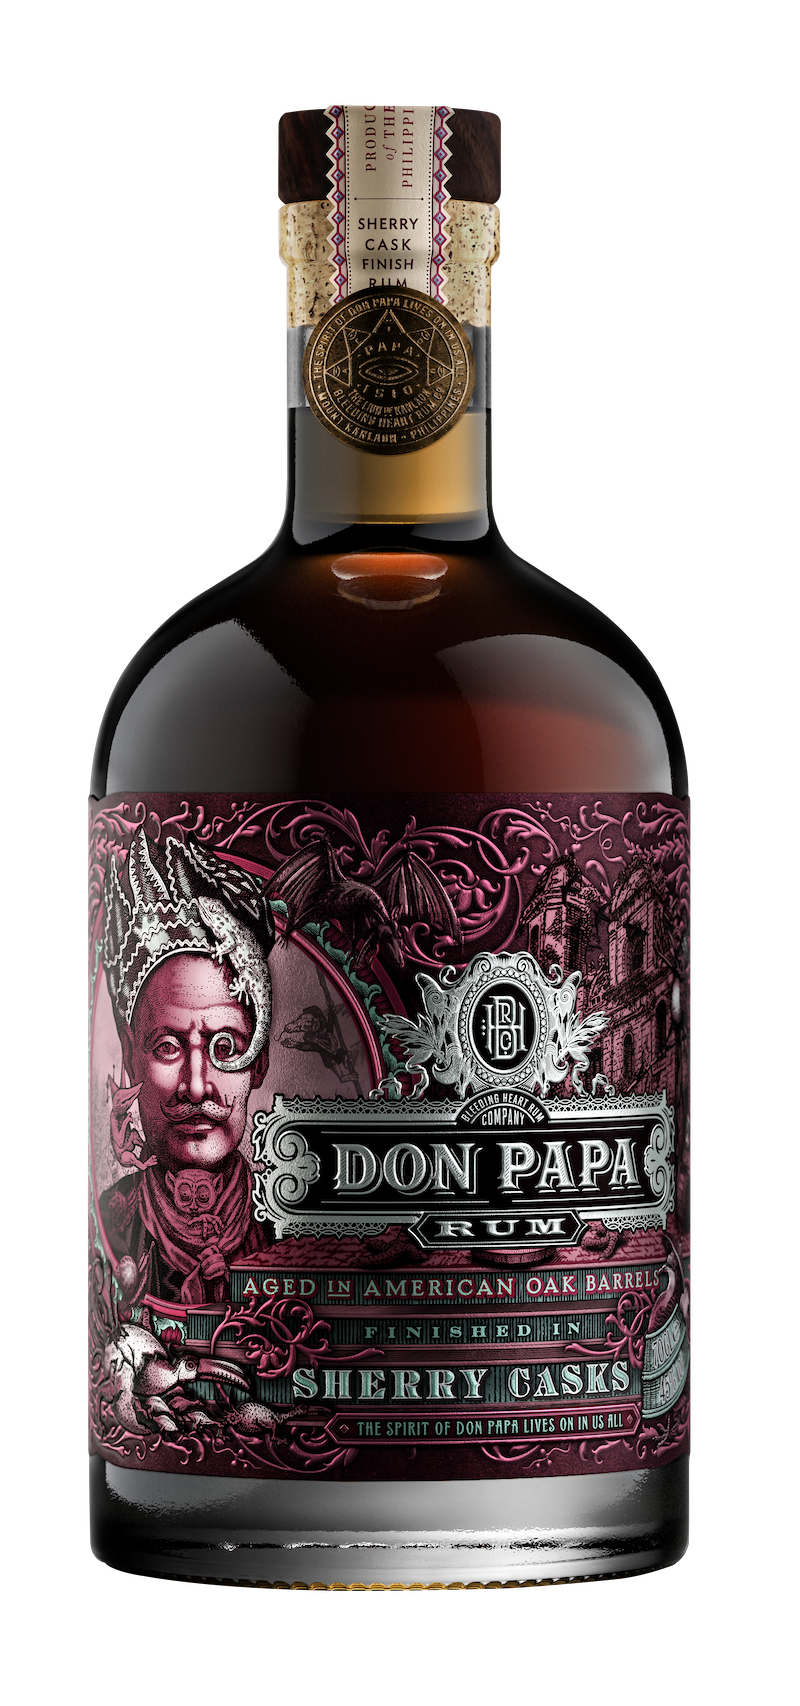 Don Papa Rum Unveils Sherry Casks Finish photo